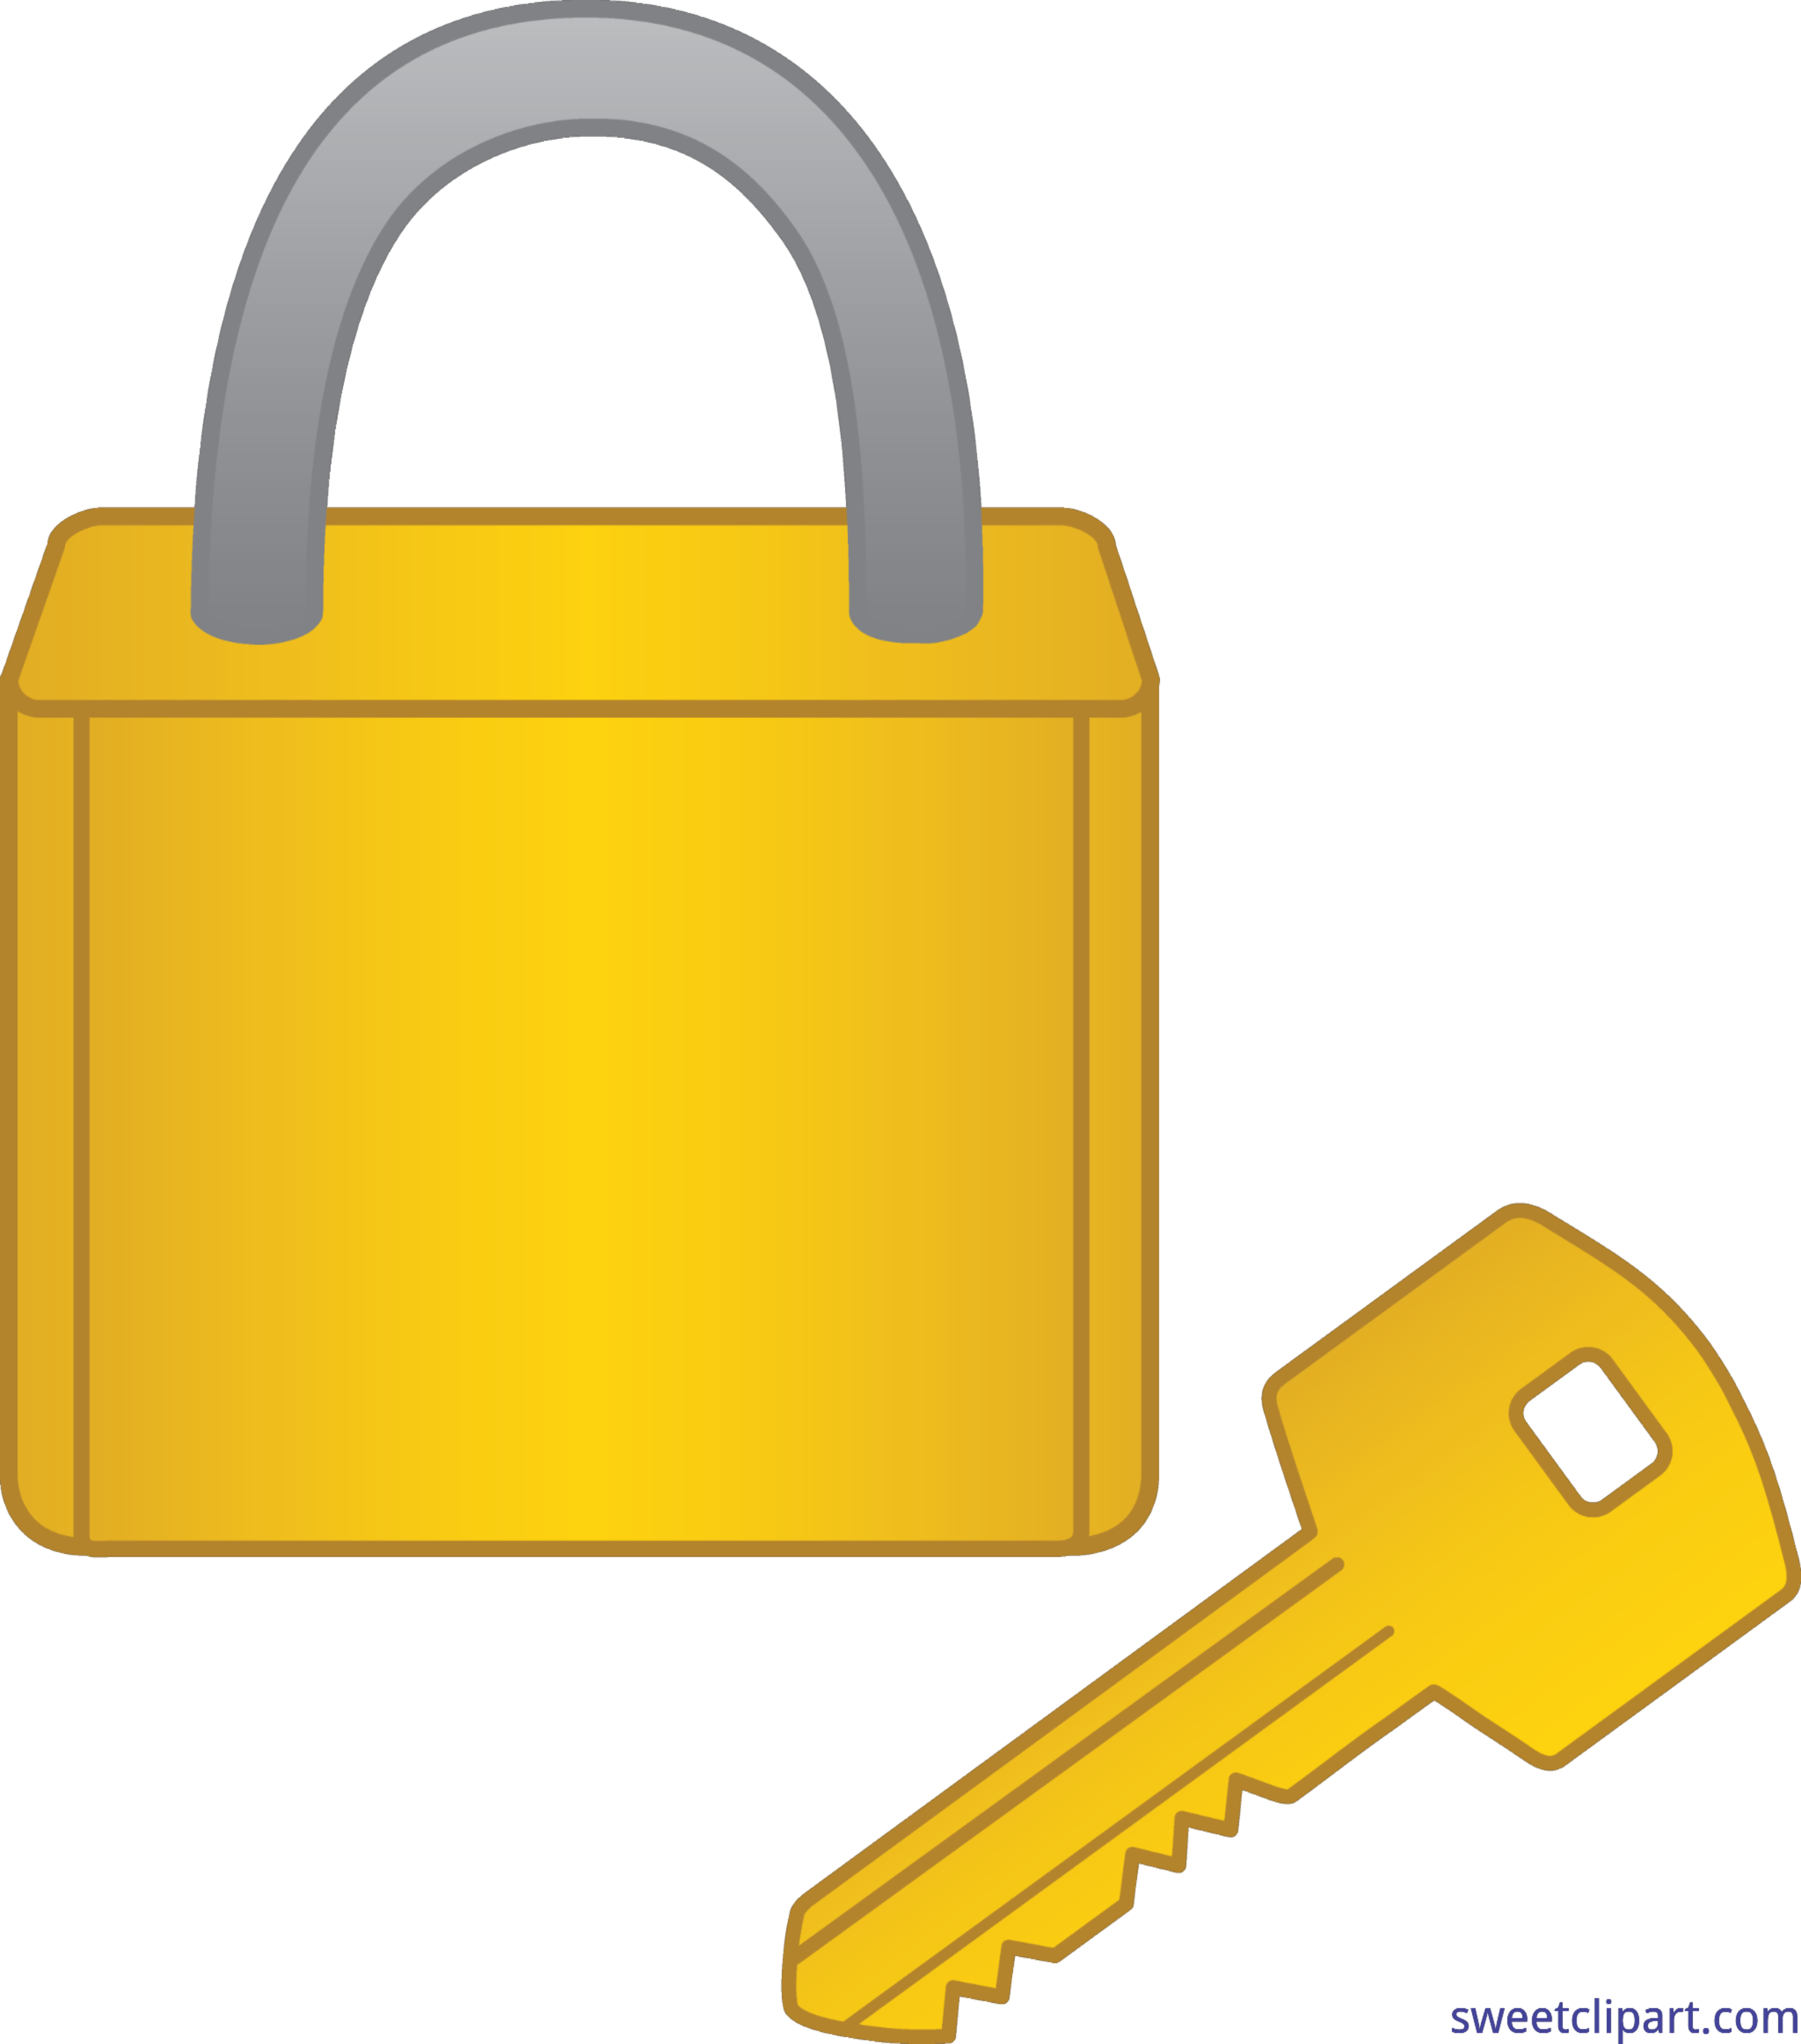 And key clip art. Lock clipart privacy